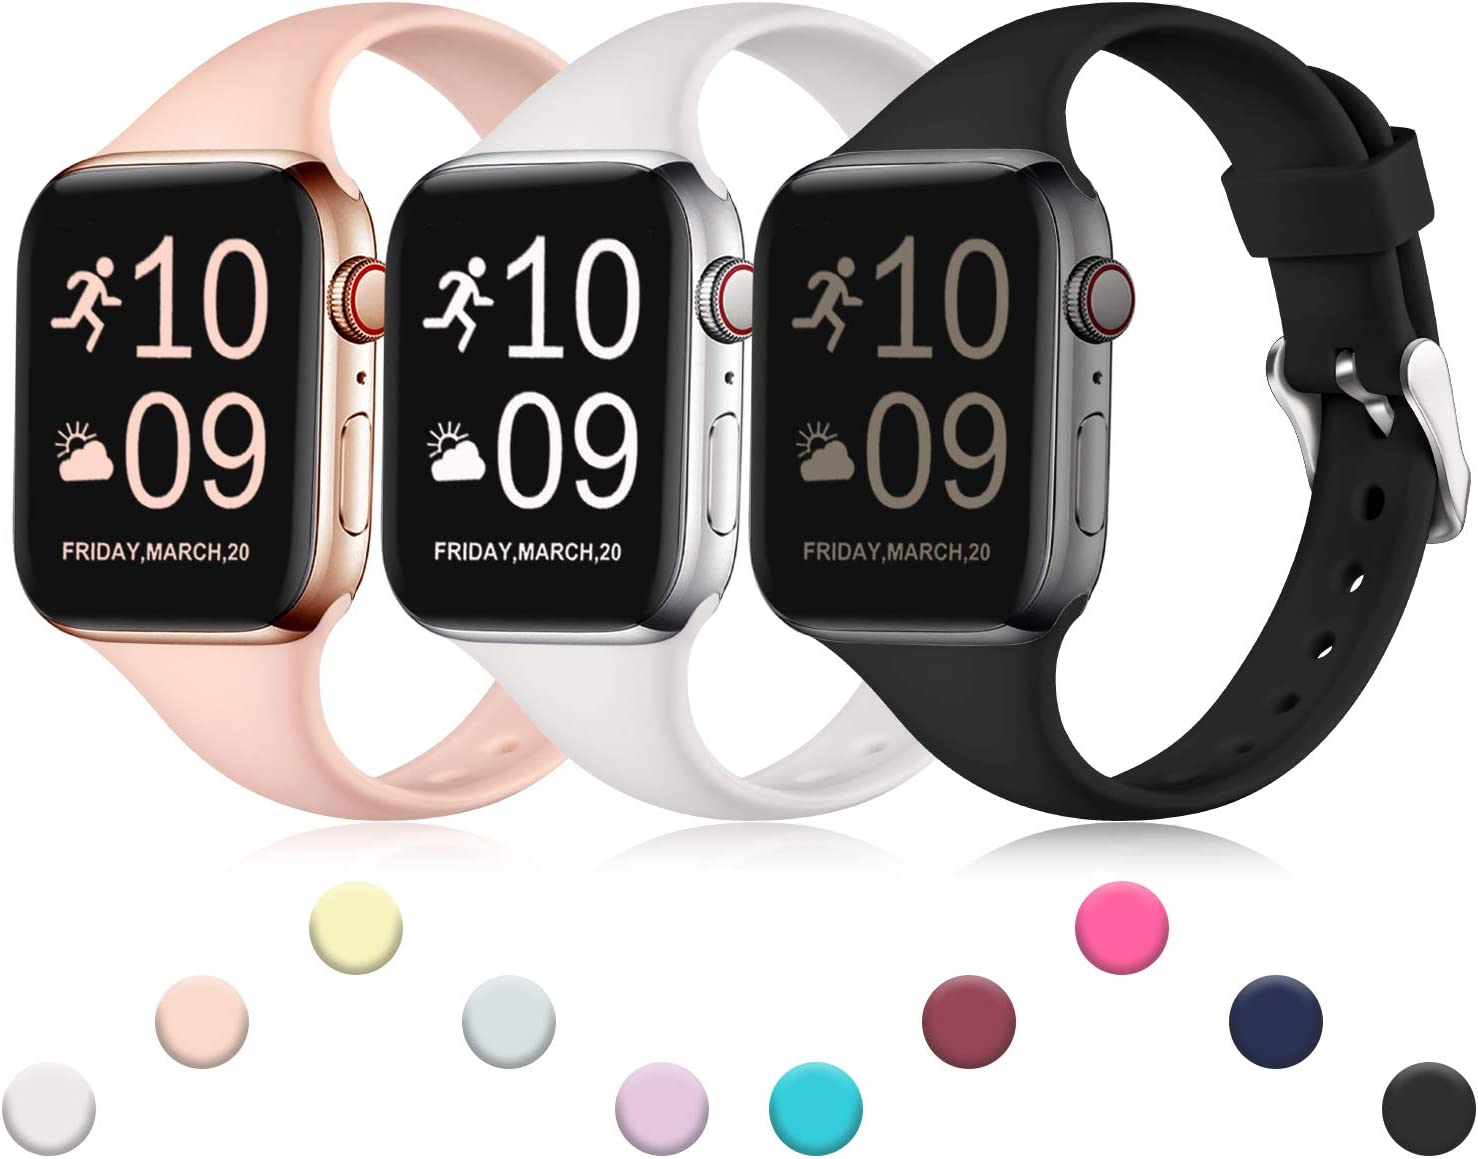 Henva Band Compatible with iWatch 40mm 38mm, Waterproof Soft Slim Band Compatible for Apple Watch SE Series 6/5/4/3/2/1, 3 Pack, Pink/White/Black, S/M